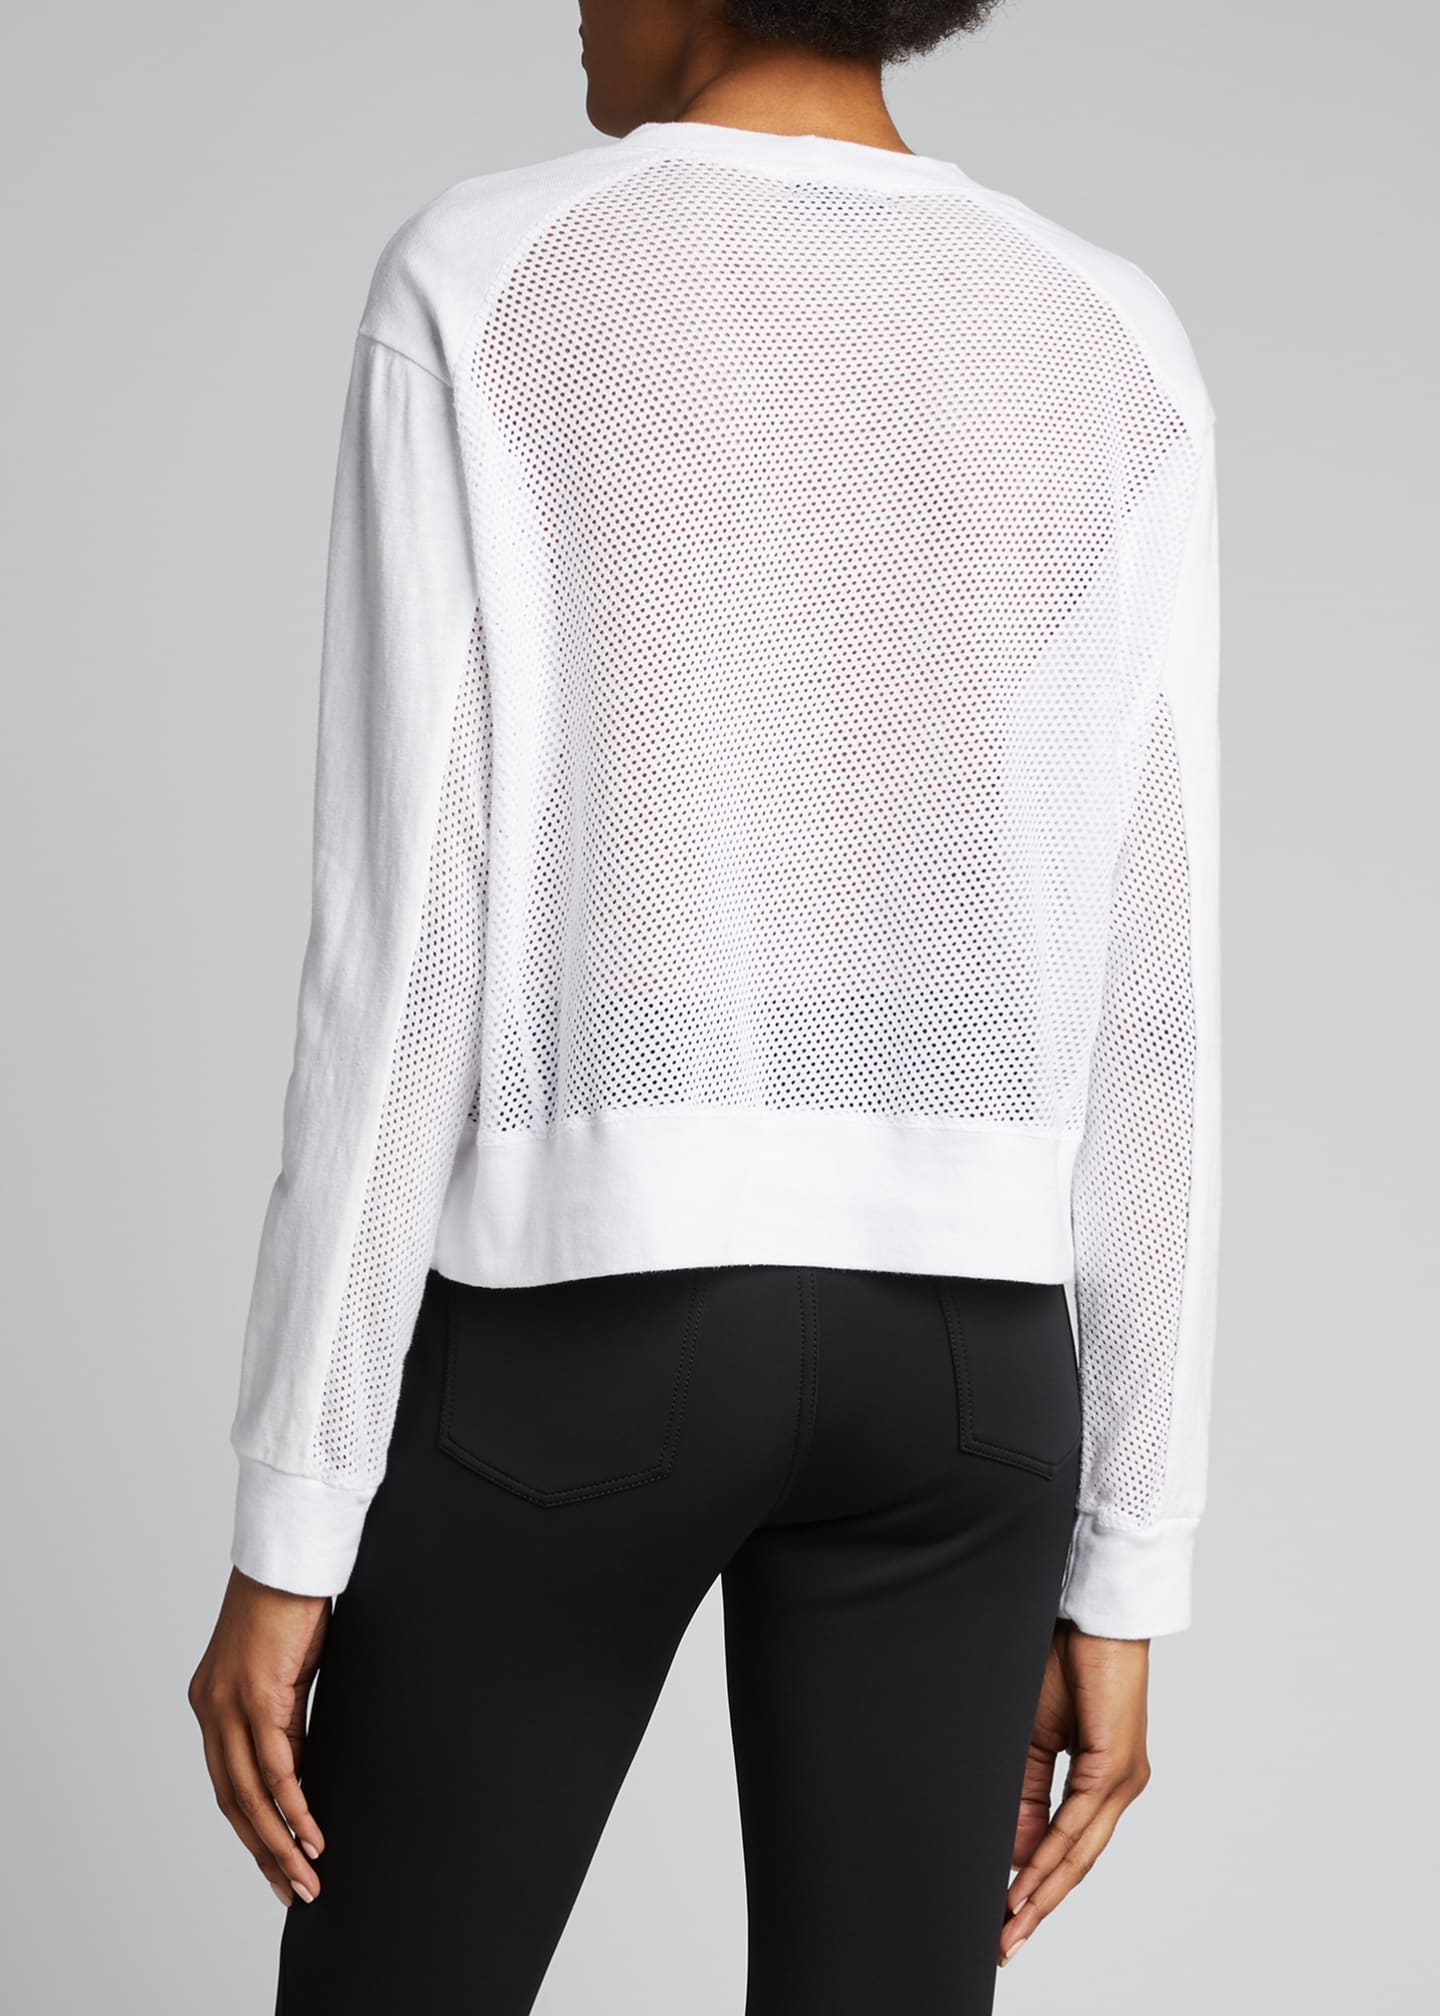 Image 2 of 5: Long-Sleeve Crewneck Sweatshirt with Mesh Back